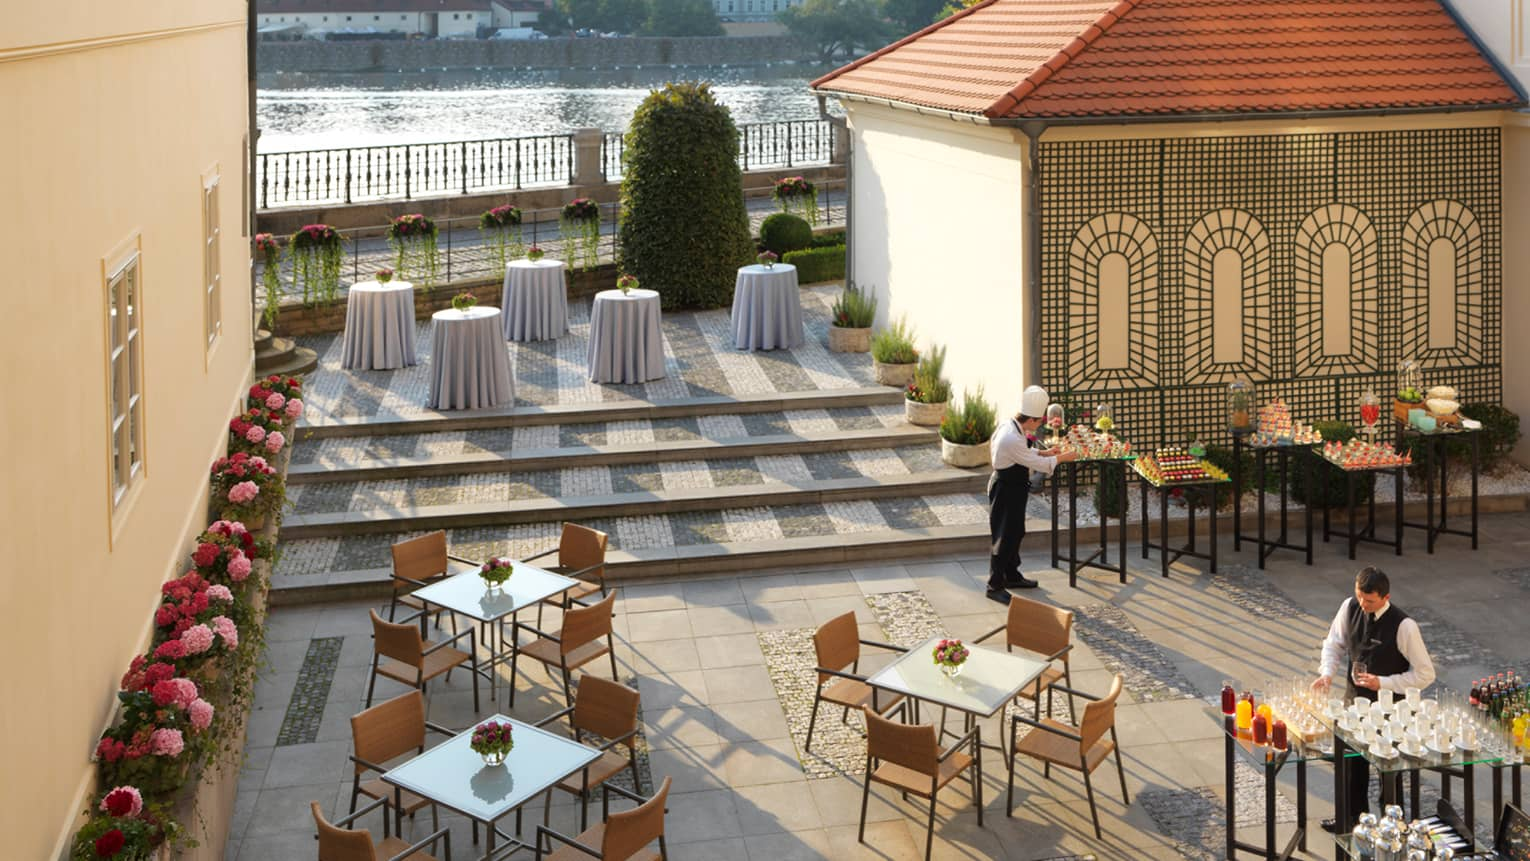 Aerial view of Karel Terrace patio tables and chairs, servers in uniforms prepare tables